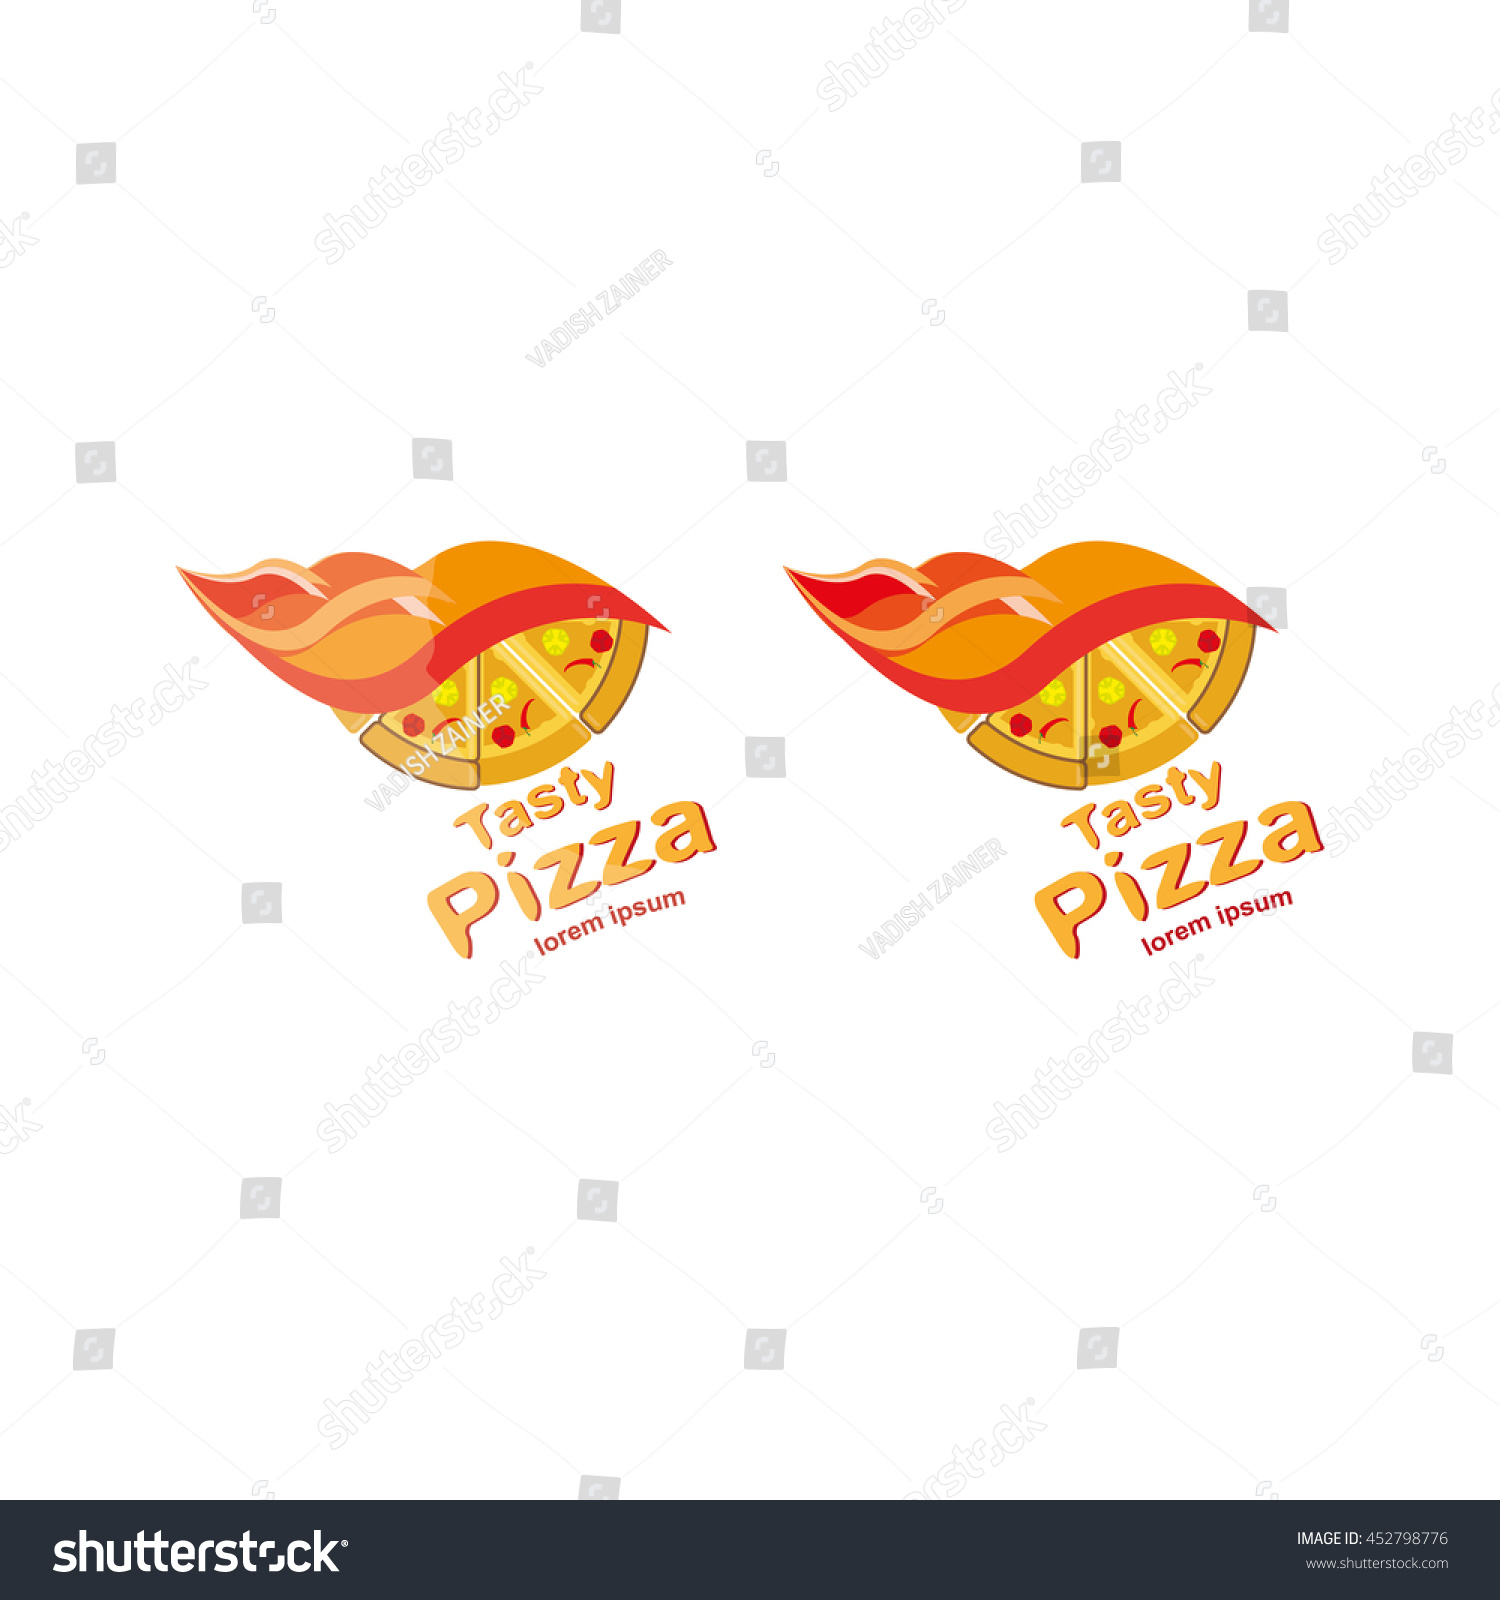 Pizza logo symbols fast food restaurant illustration stock vector pizza logo symbols for fast food restaurant illustration for food buycottarizona Image collections